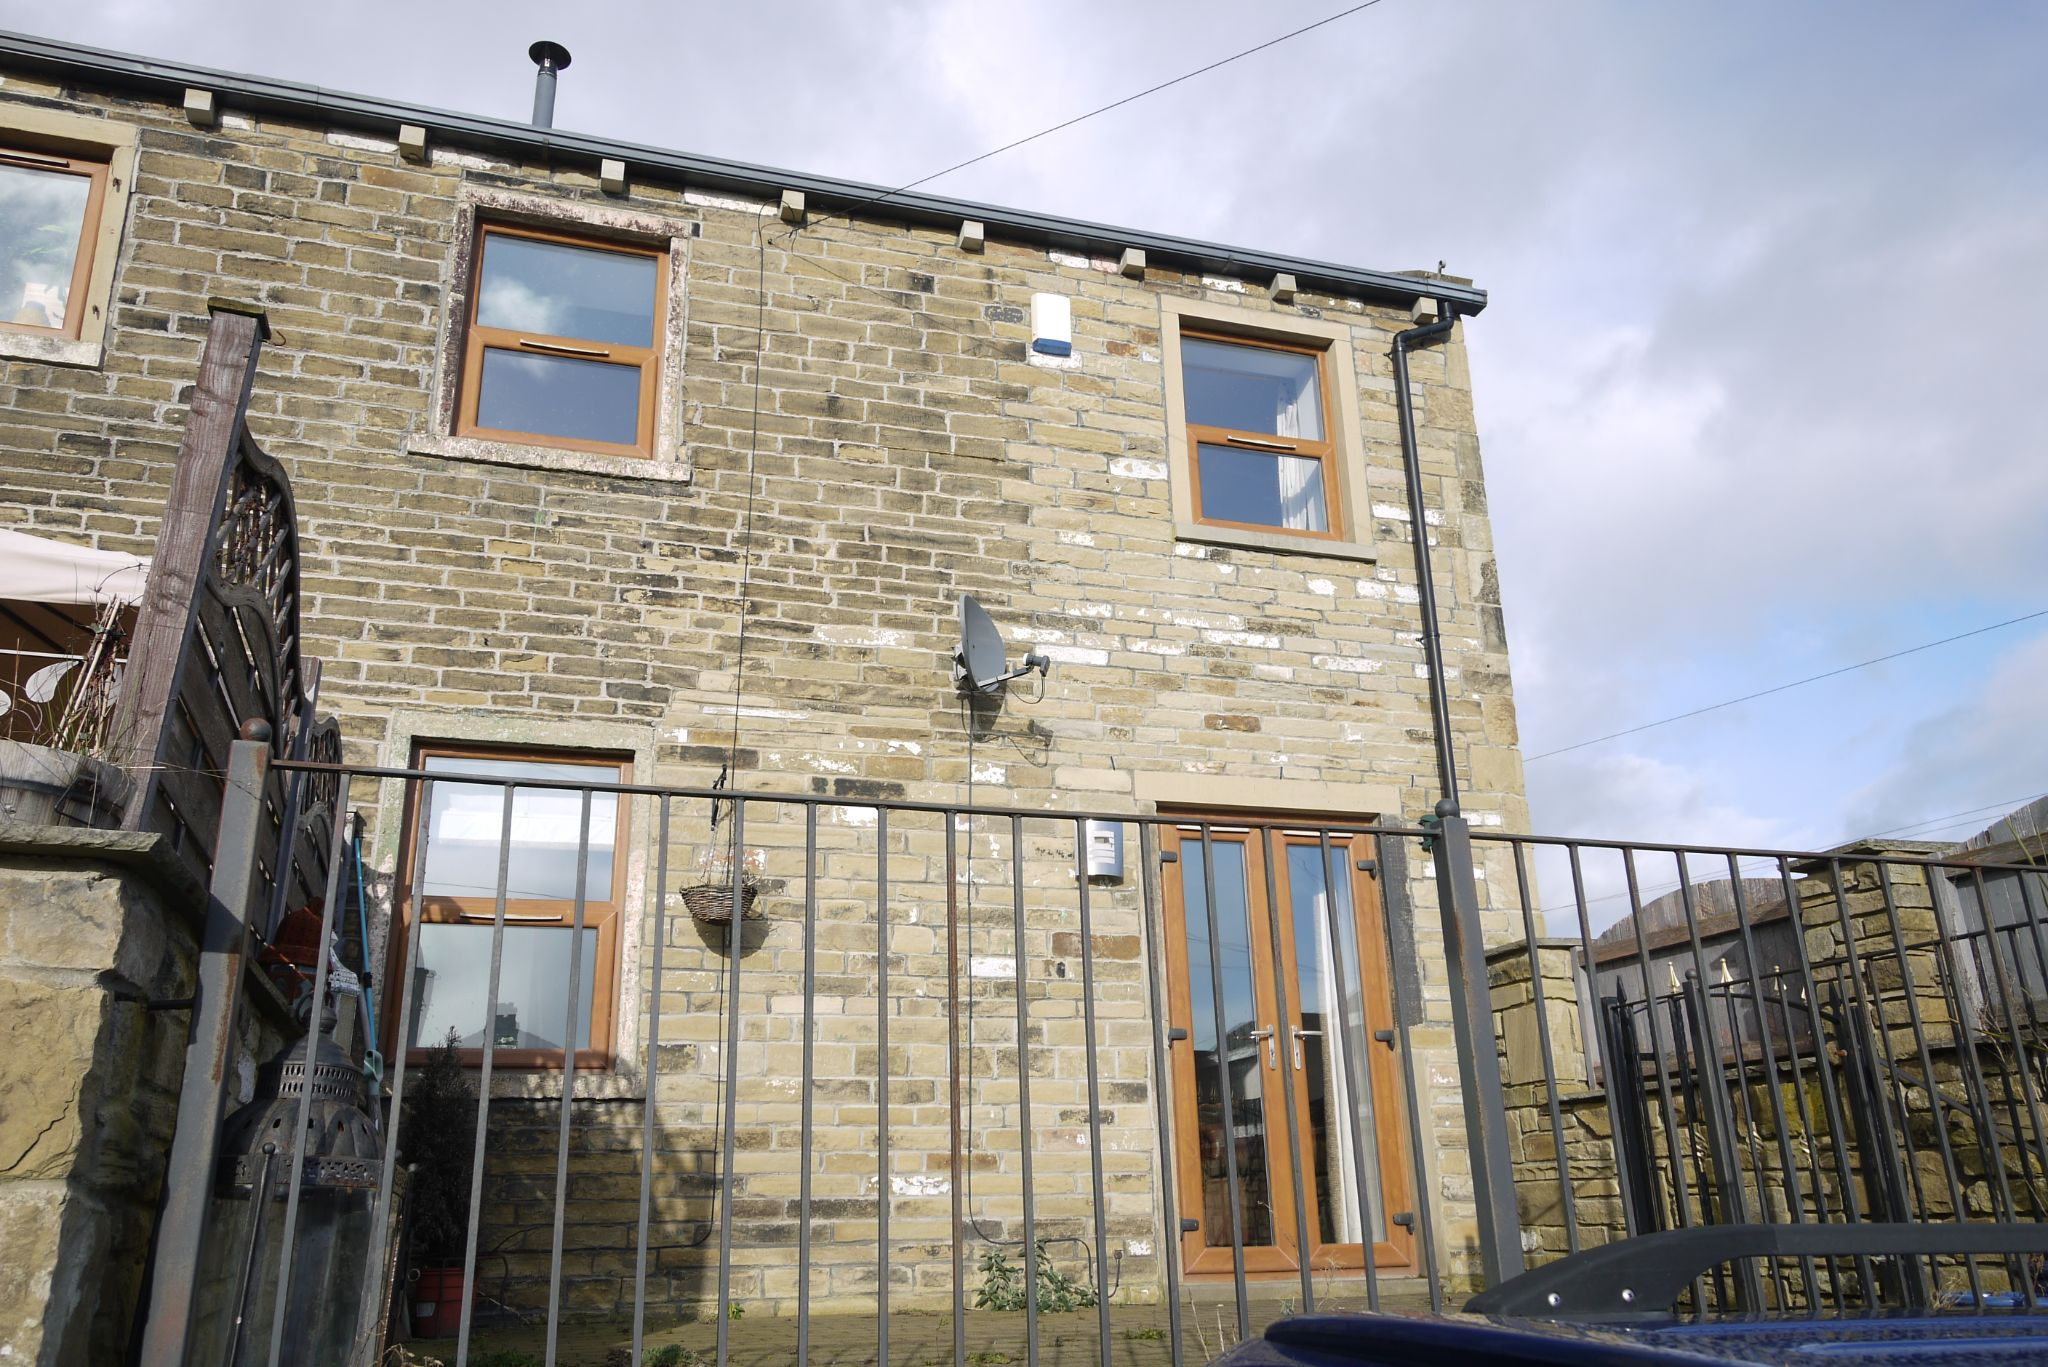 4 bedroom barn character property For Sale in Brighouse - Photograph 18.